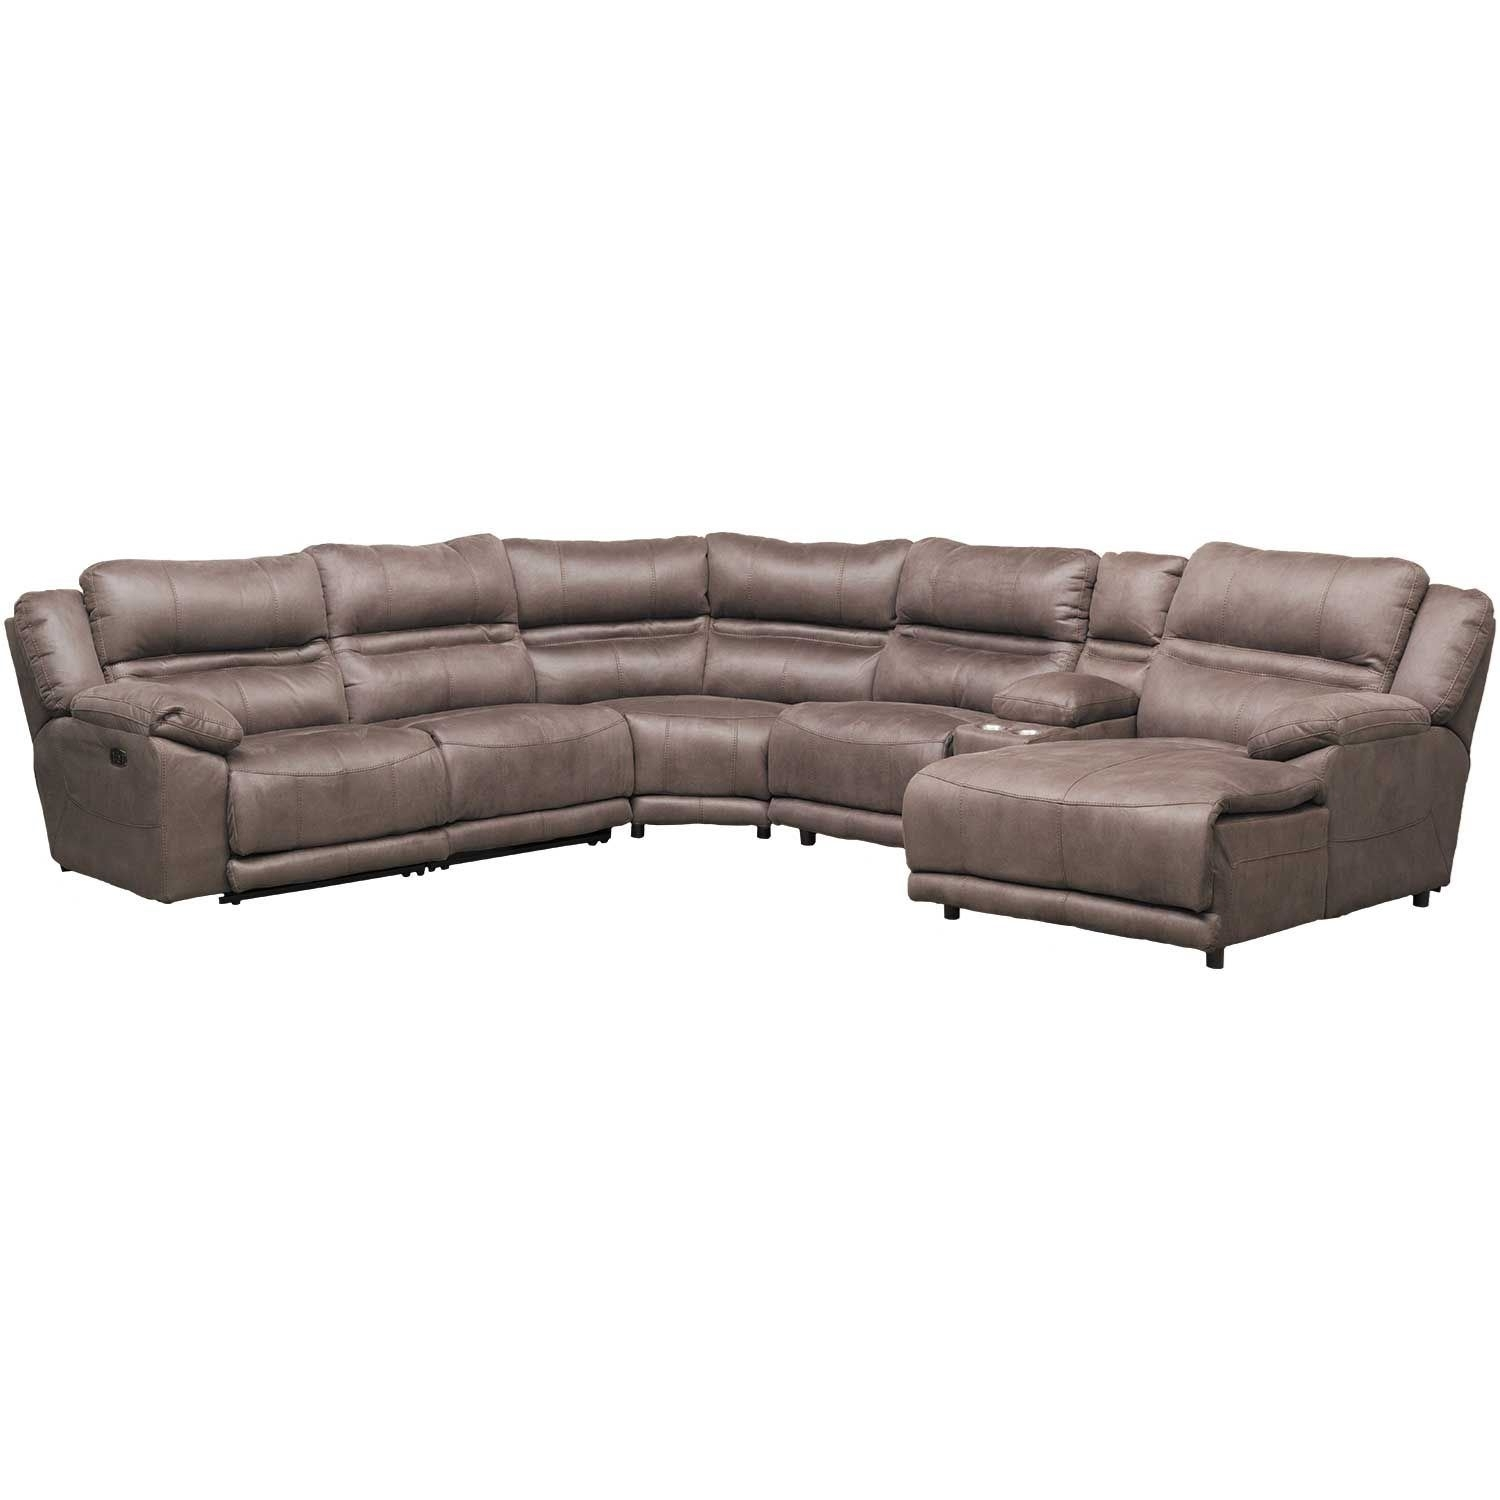 Braxton 6 Piece Power Reclining Sectional With Adjustable Headrest intended for Jackson 6 Piece Power Reclining Sectionals (Image 5 of 30)